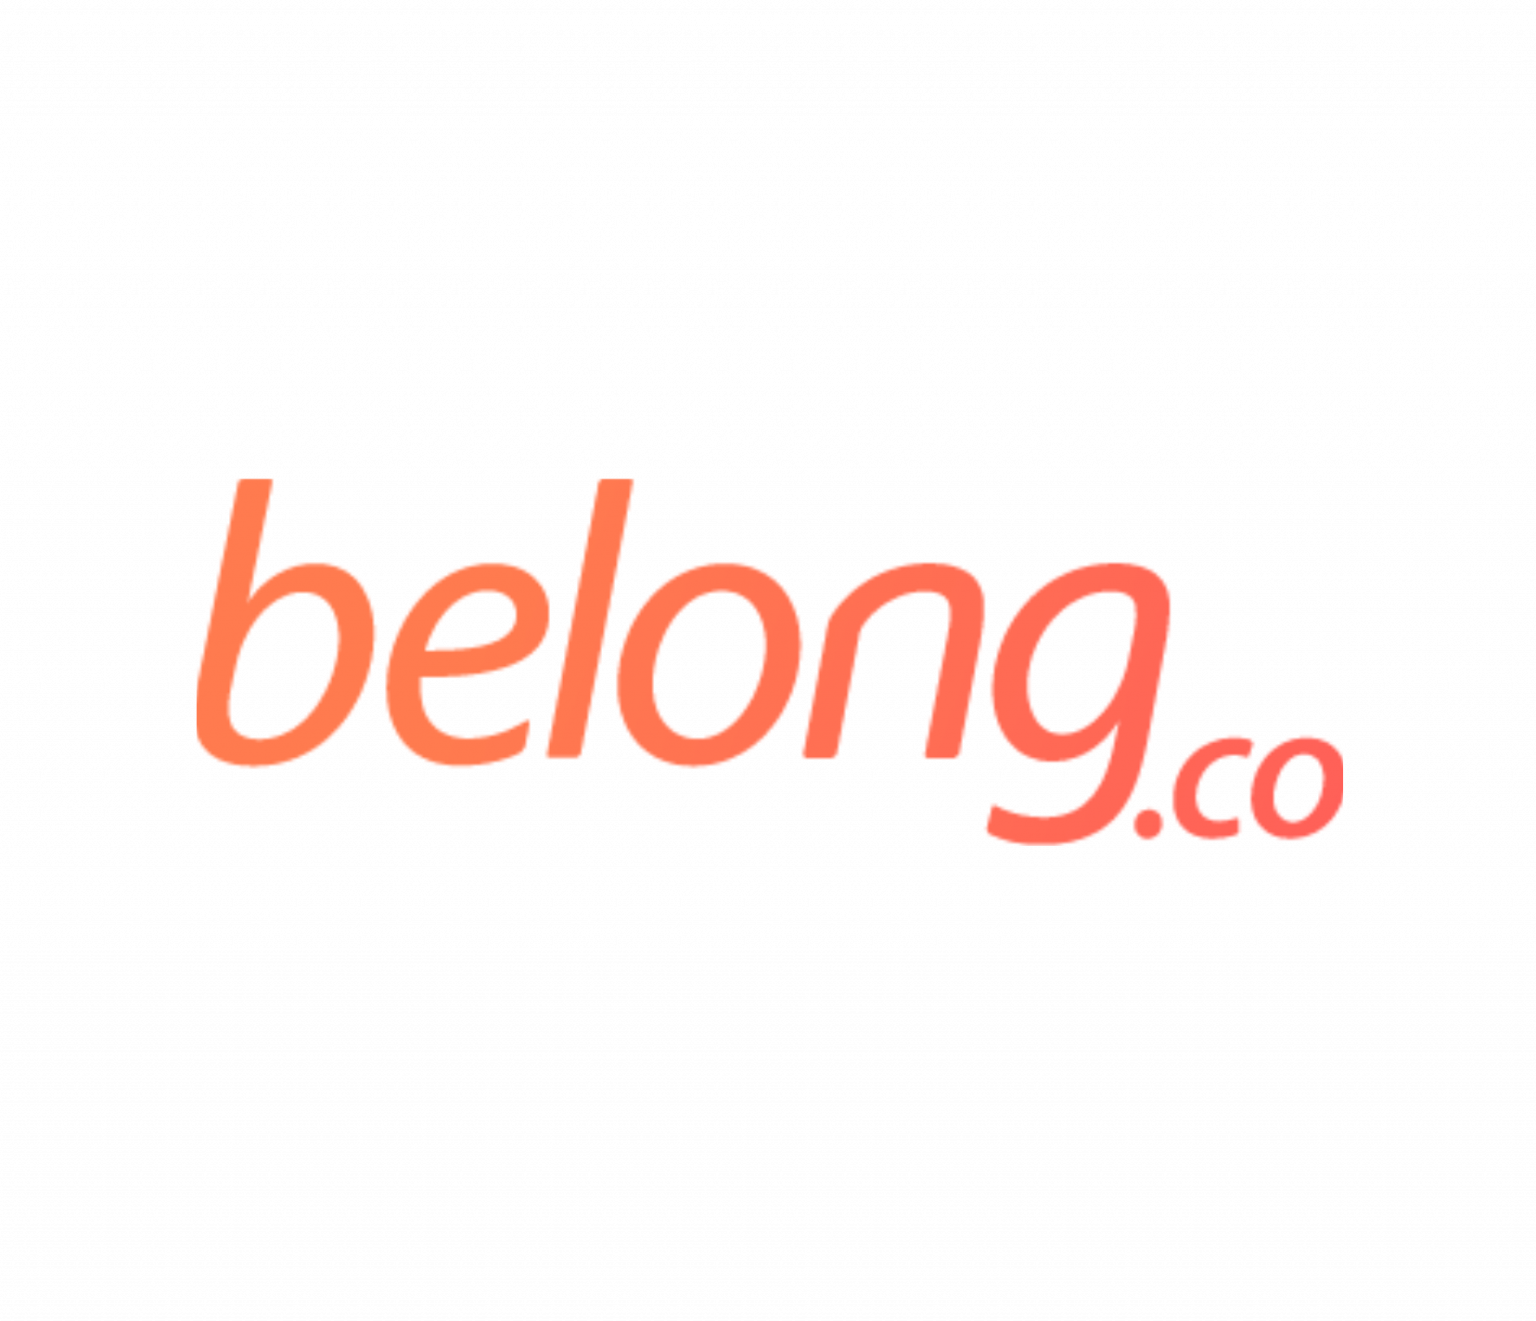 Belong - Wurkr Global Partner